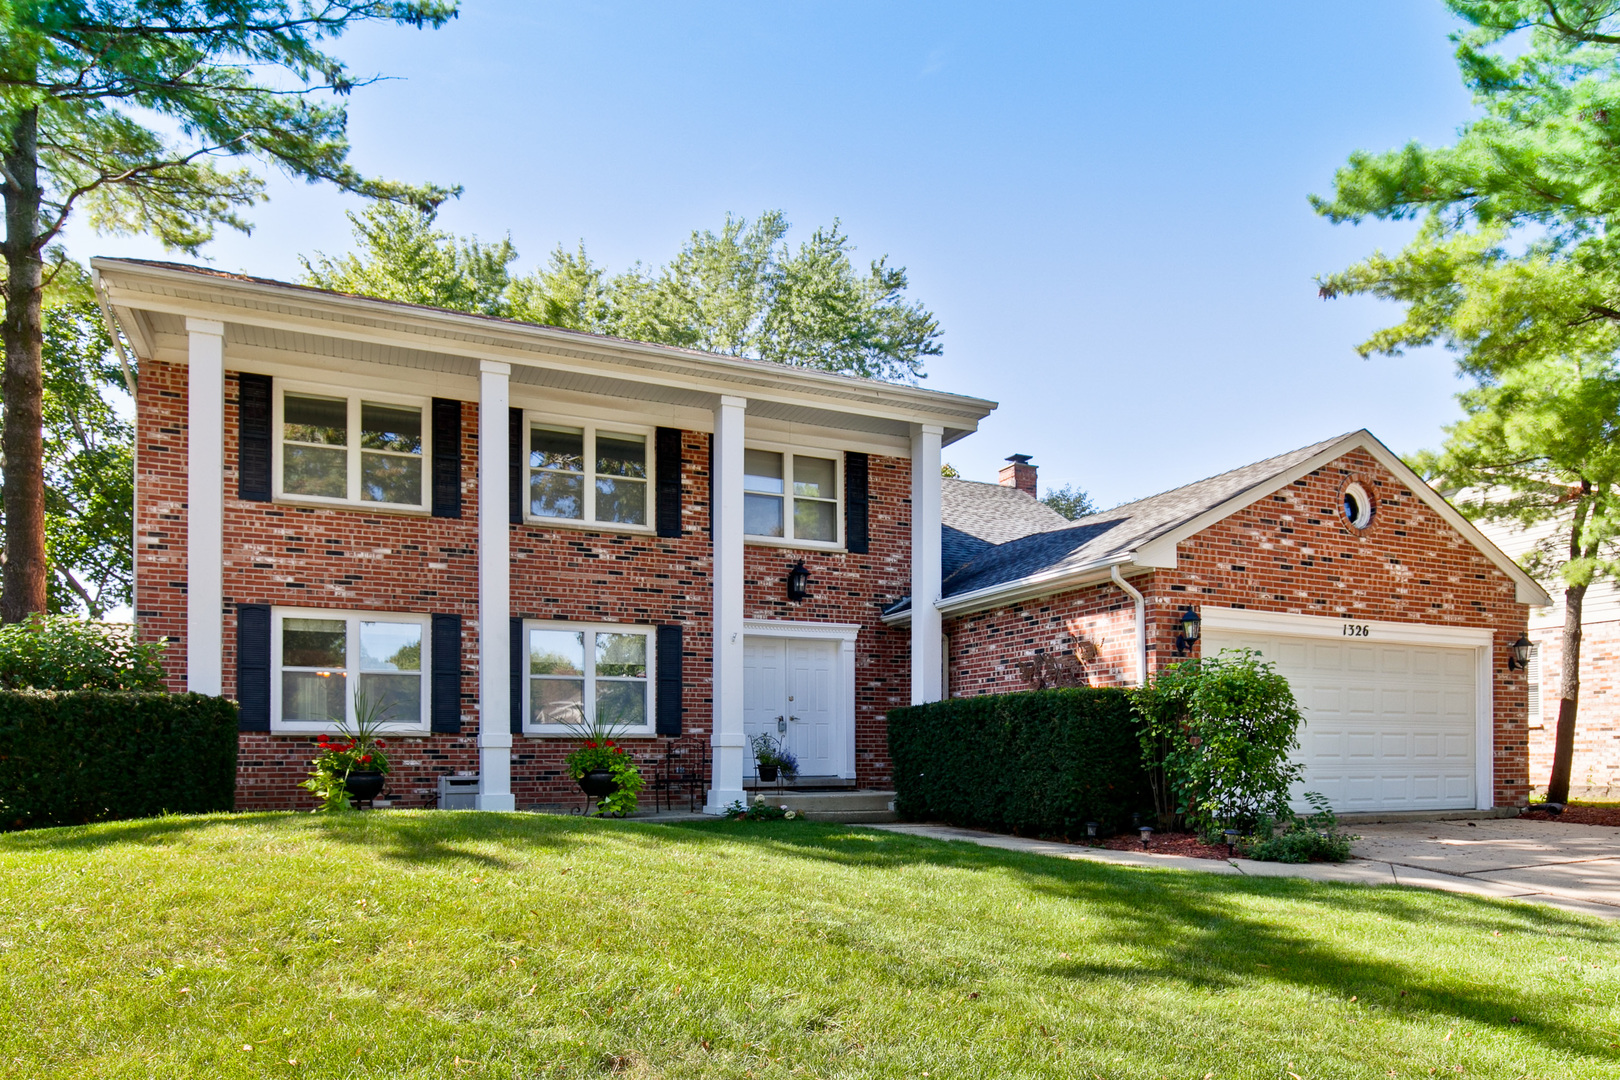 One of Buffalo Grove 4 Bedroom Homes for Sale at 1326 Rose Court West